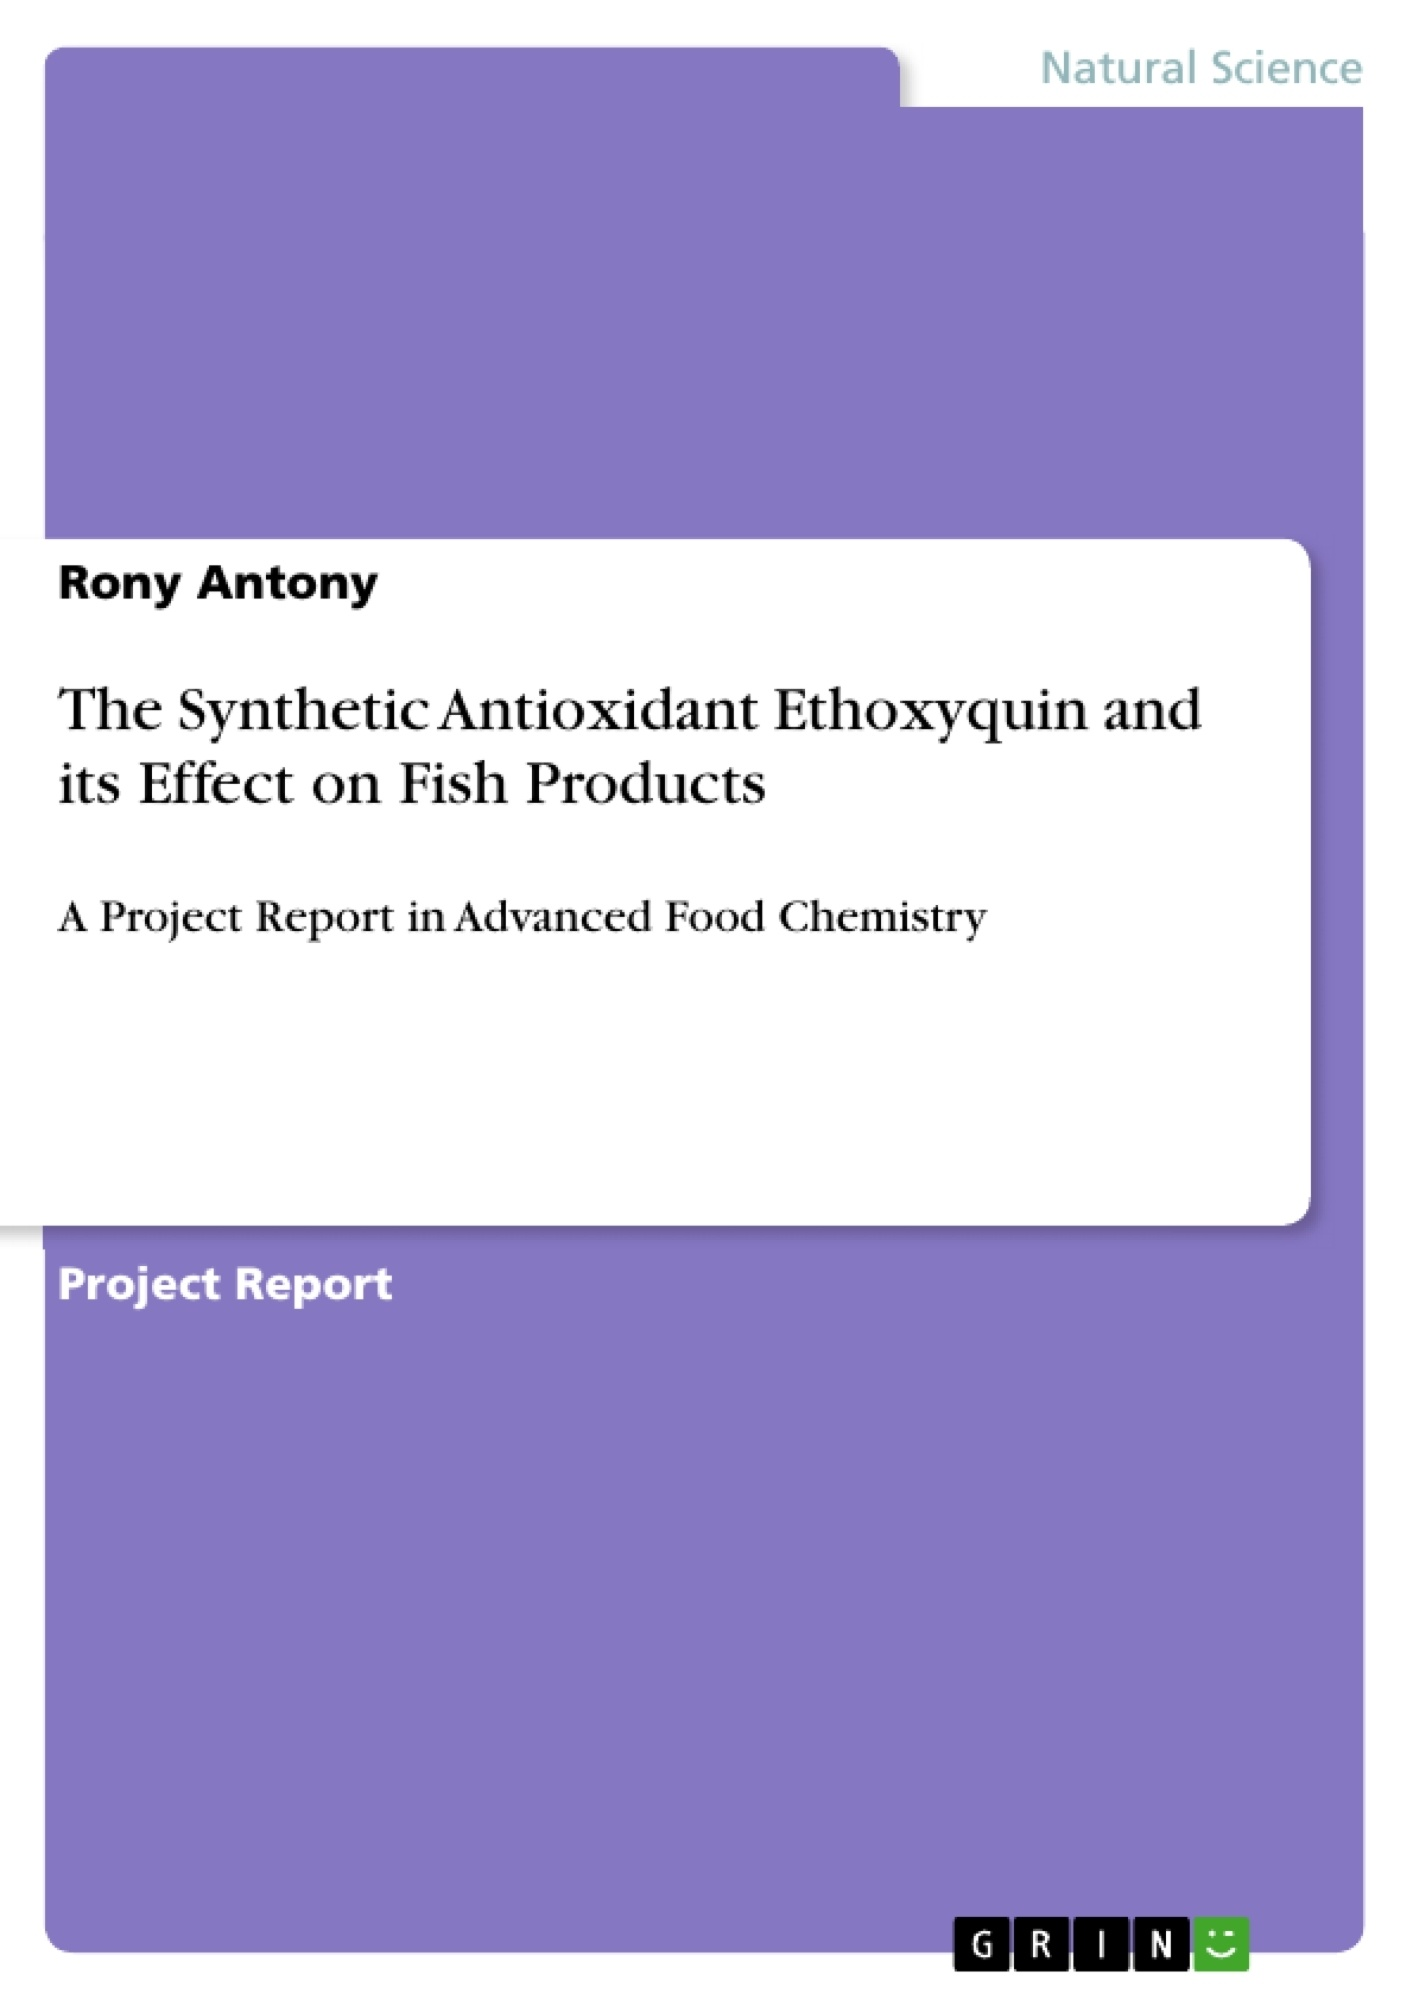 Title: The Synthetic Antioxidant Ethoxyquin and its Effect on Fish Products